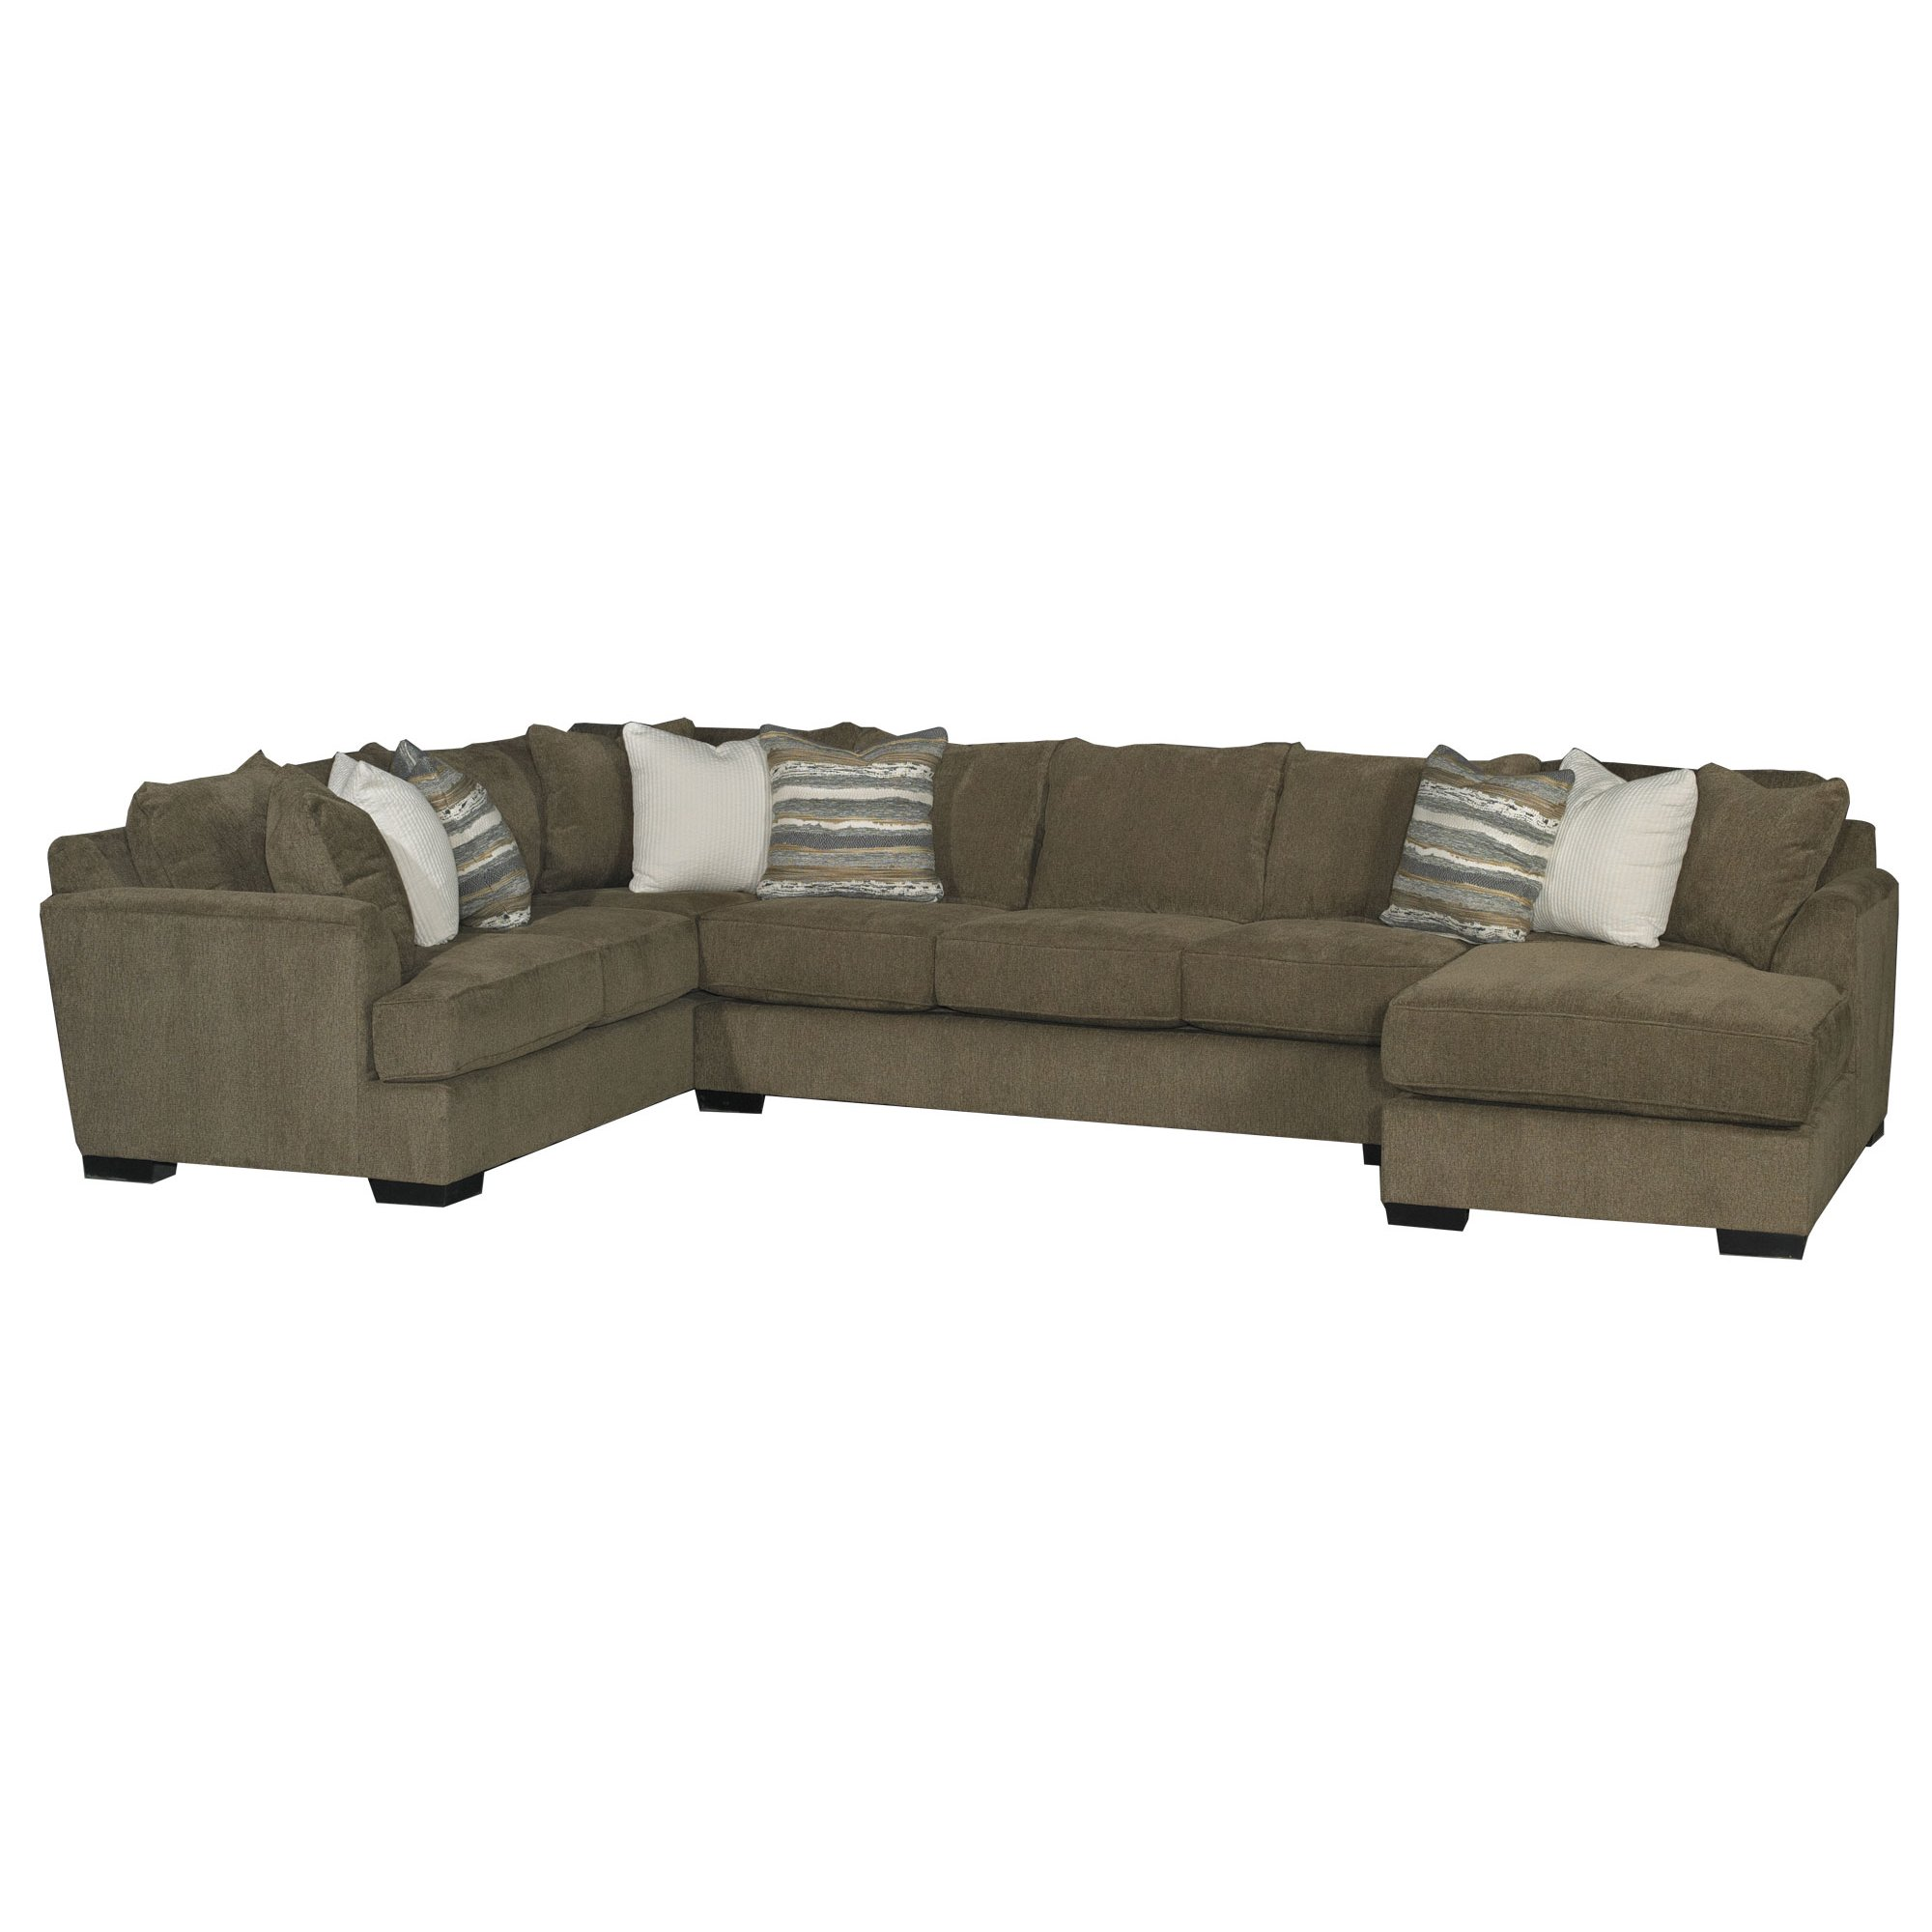 Chocolate Brown 3 Piece Sectional Sofa with RAF Chaise - Tranquility